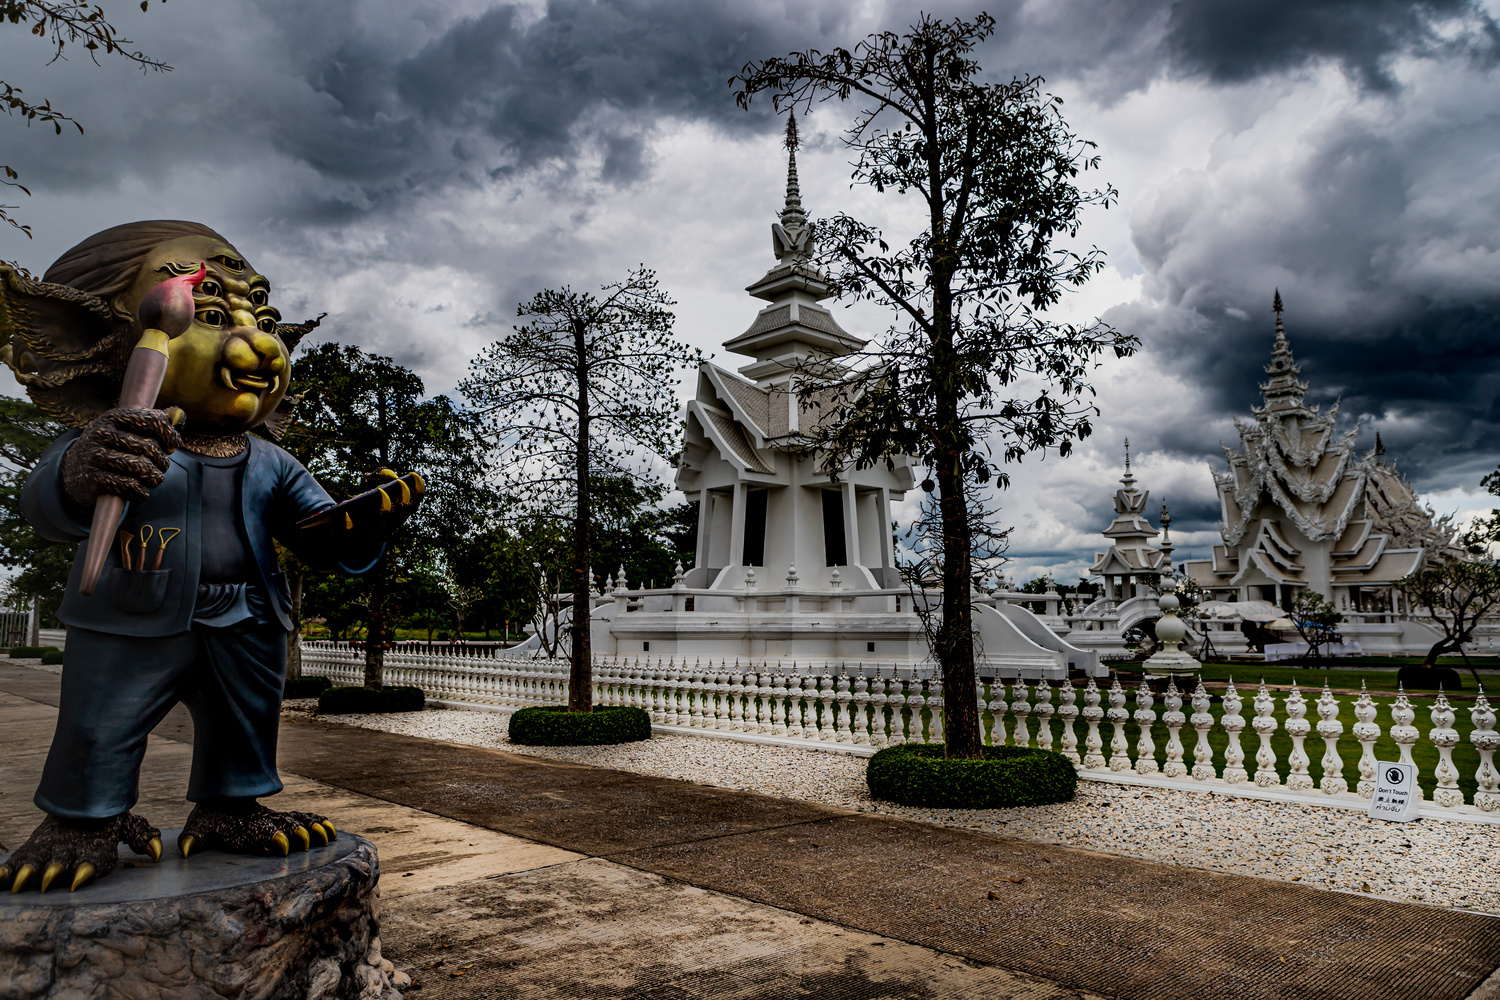 White Temple, Chiang Rai, Thailand by Stephen Scully